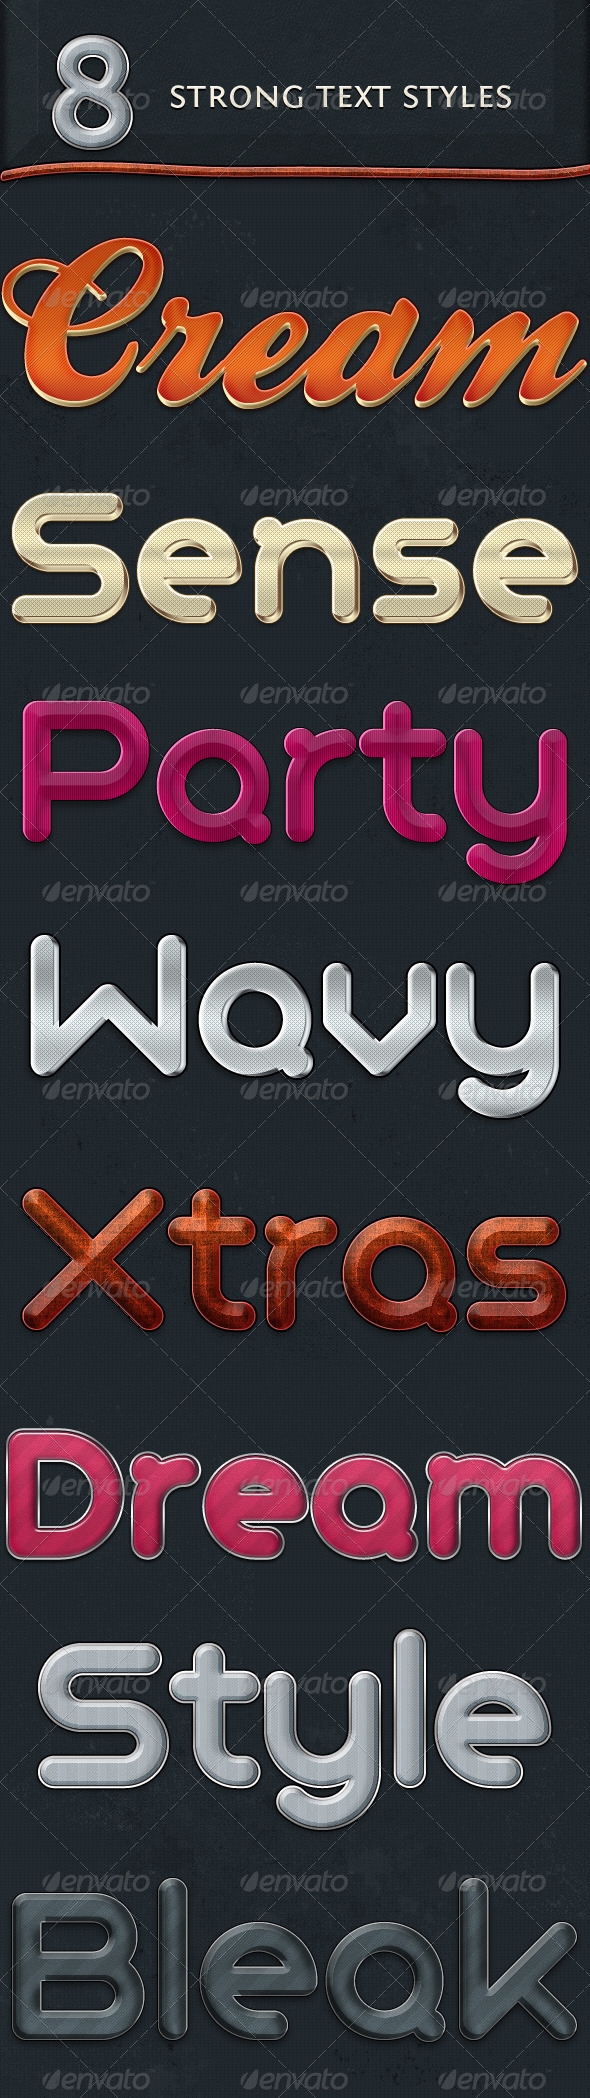 GraphicRiver Strong Text Styles 01 4769209